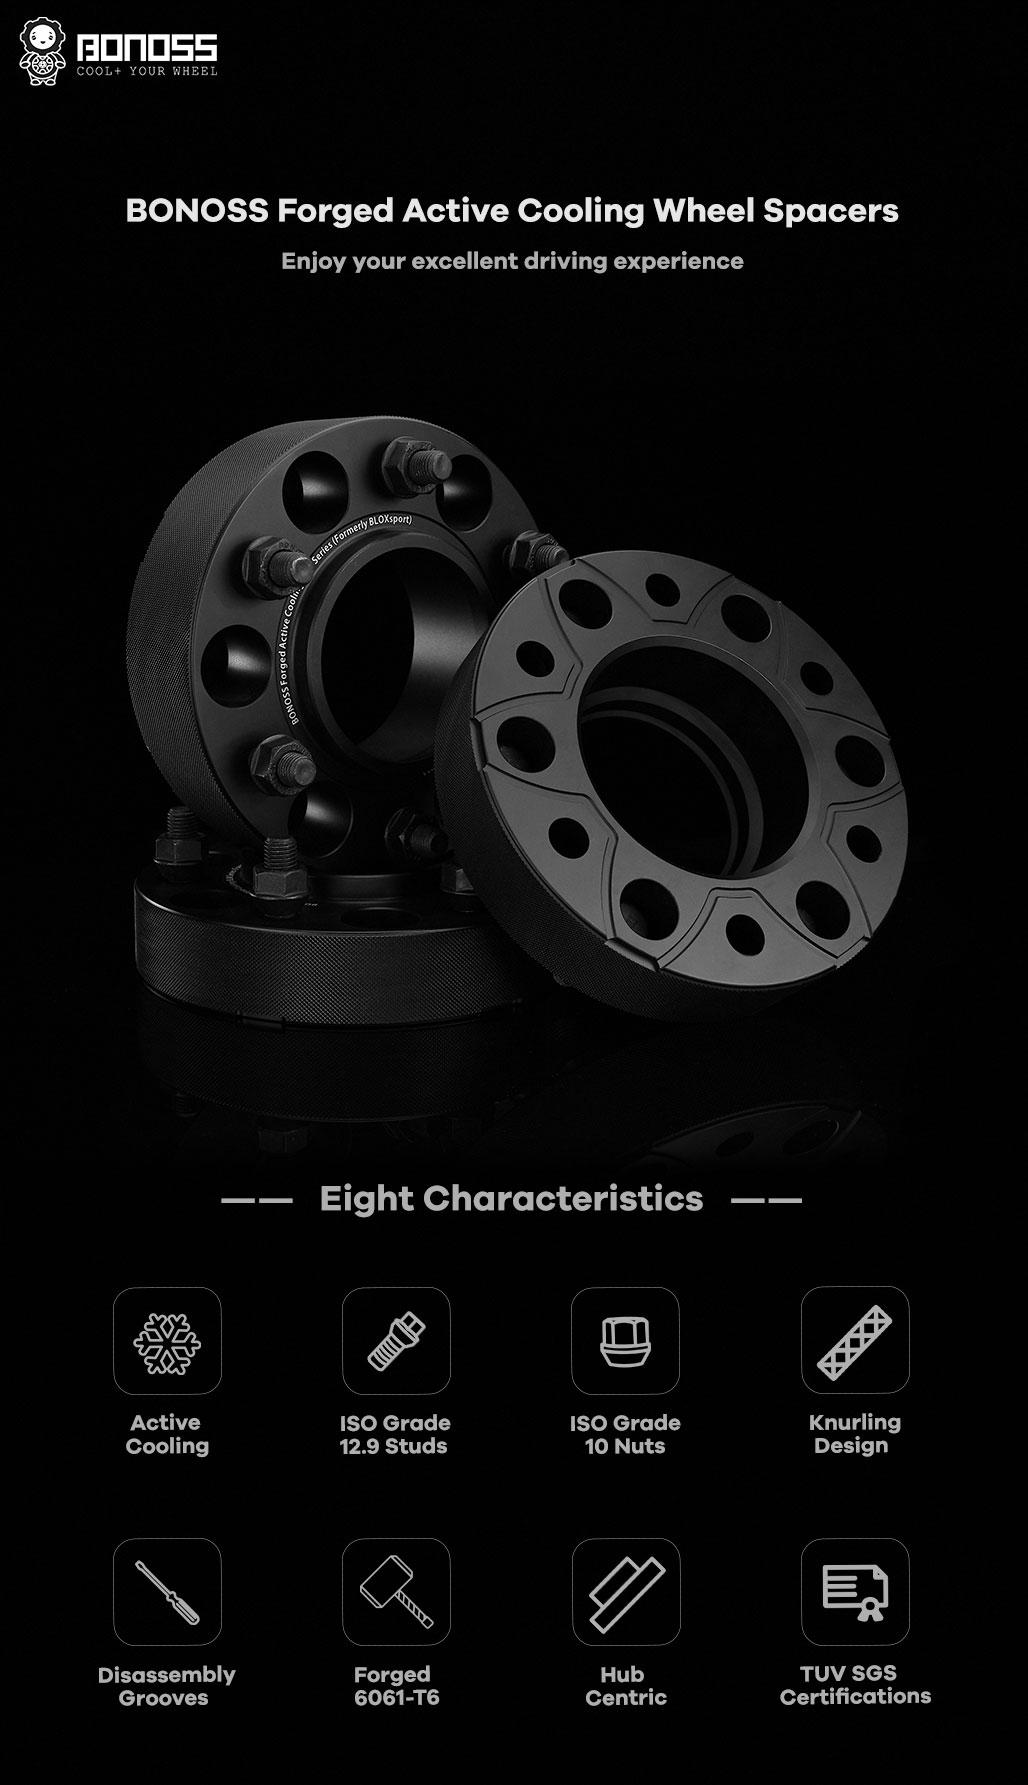 BONOSS-forged-active-cooling-wheel-spacer-for-mazda-bt50-6x139.7-93.1-12x1.5-6061t6-by-grace-1.